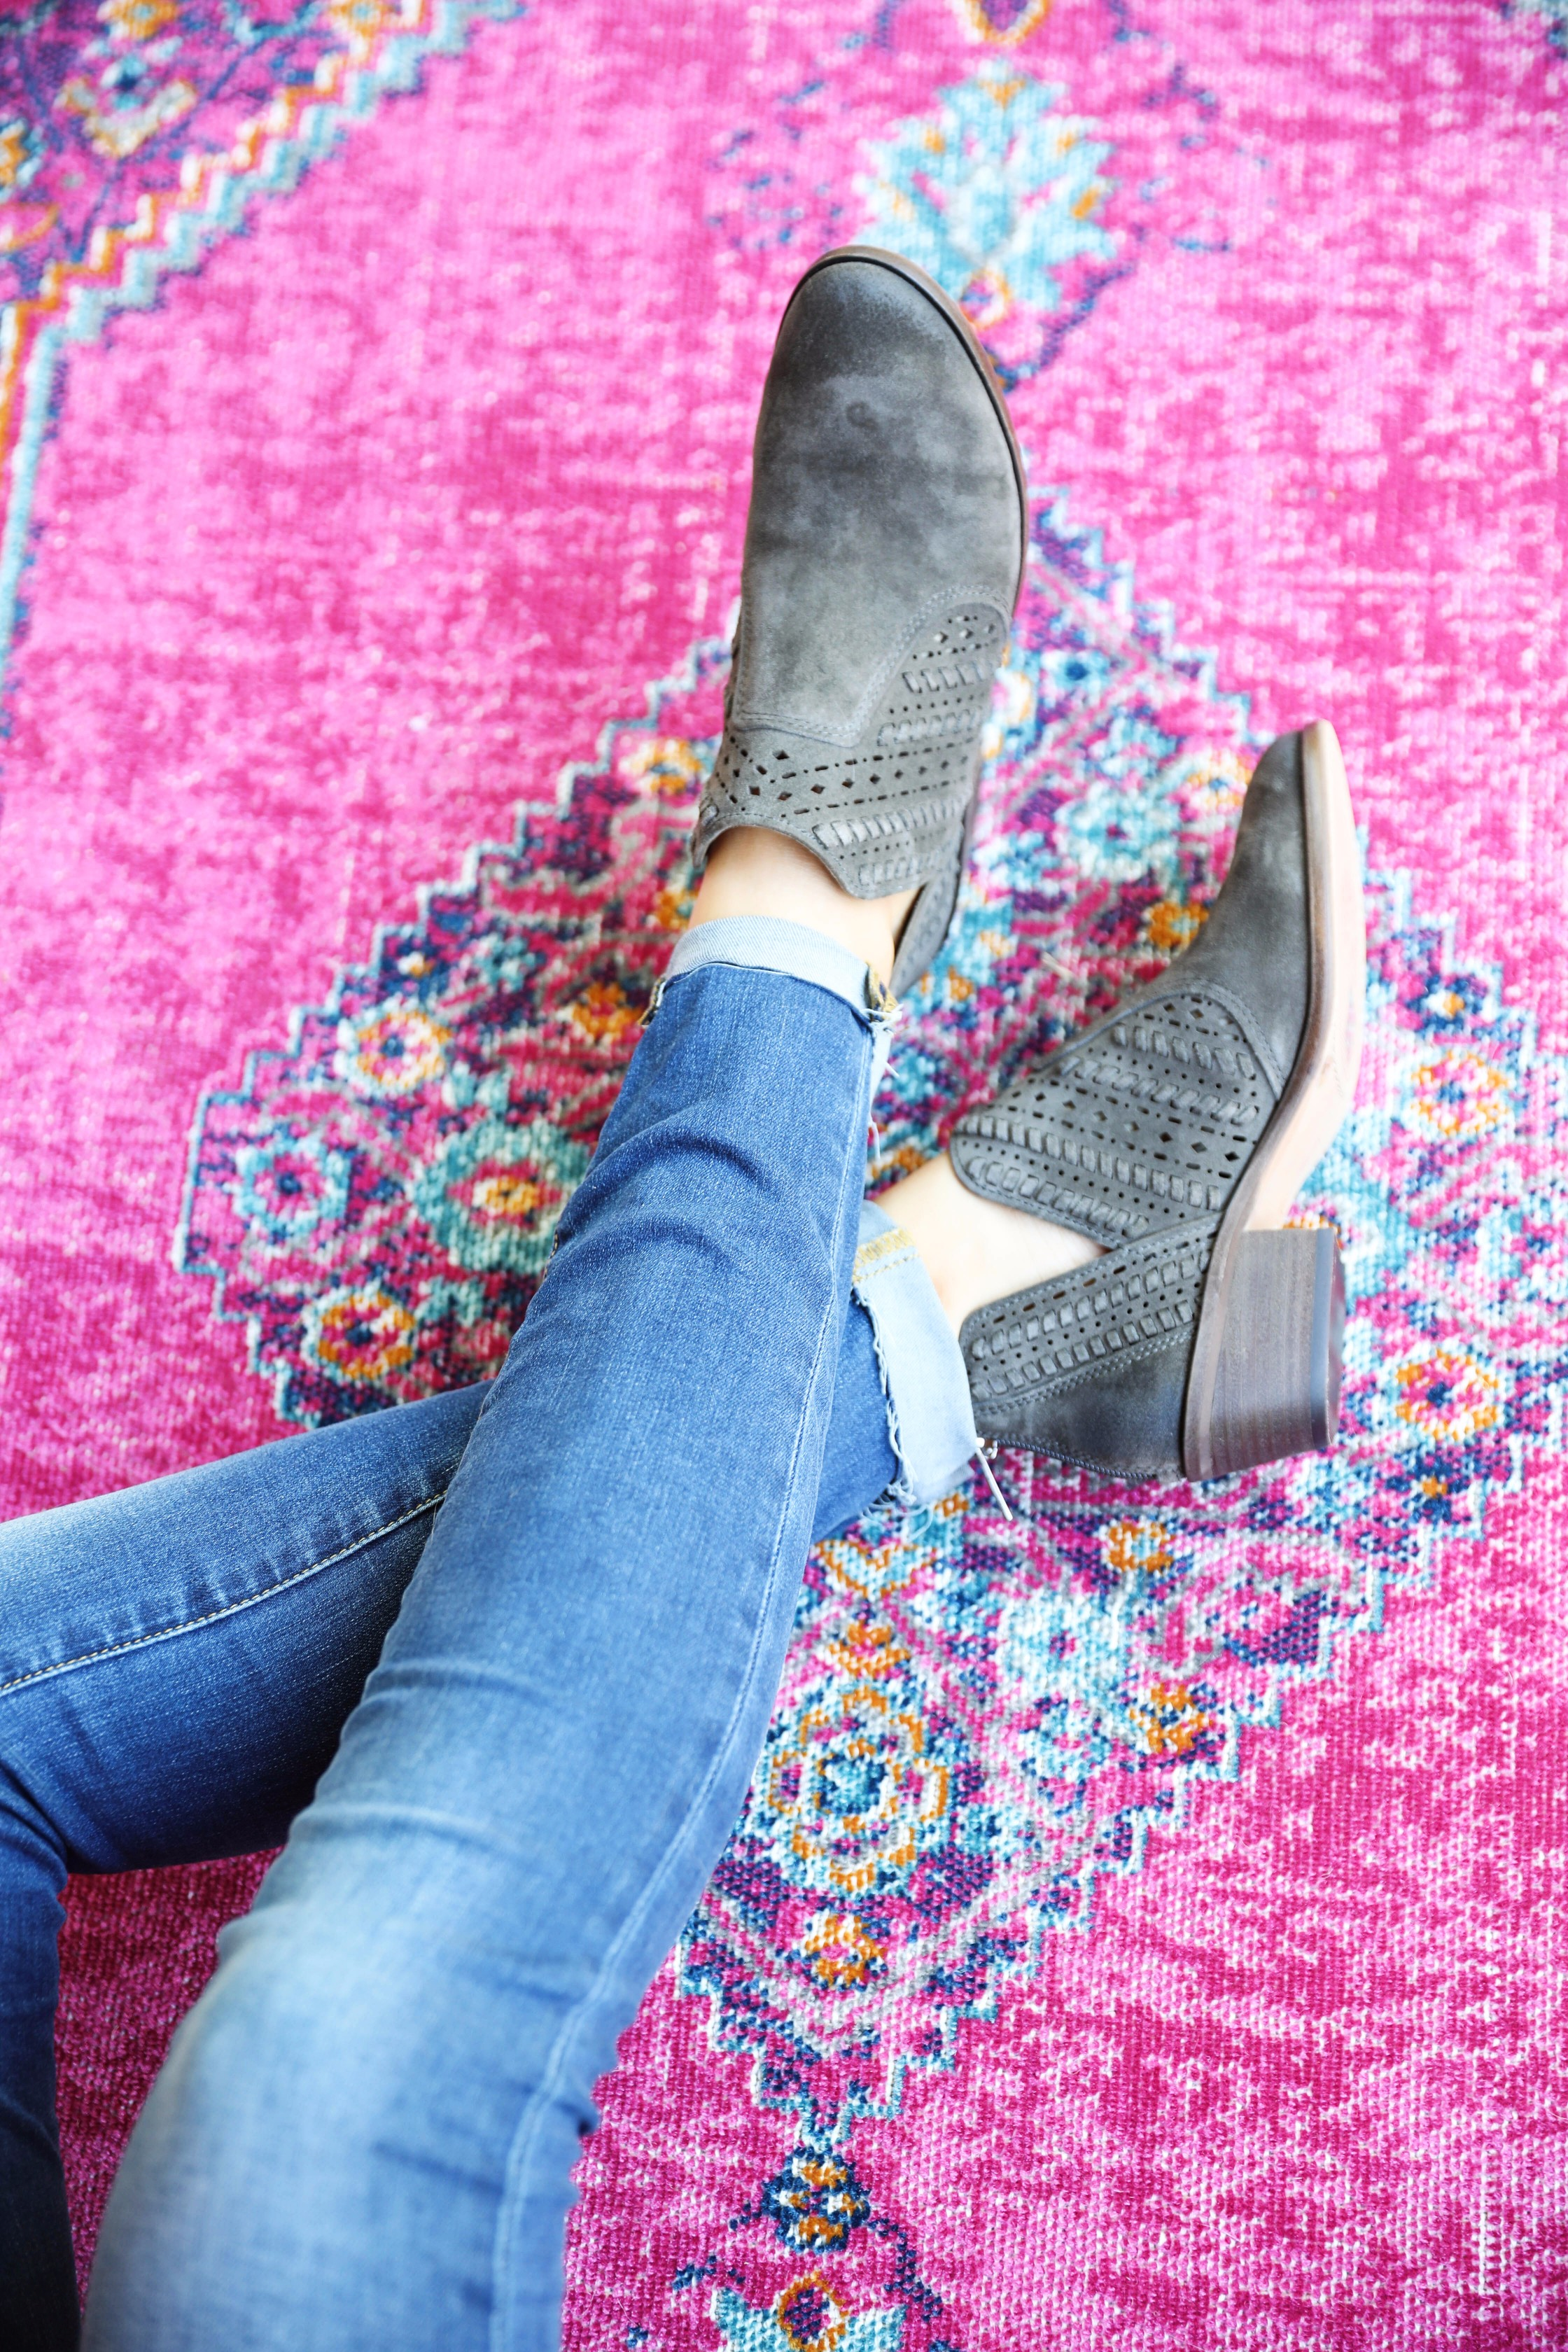 My favorite booties for fall! You can't go wrong with a cute pair of booties, and you can never have too many! On fashion blog daily dose of charm by lauren lindmark